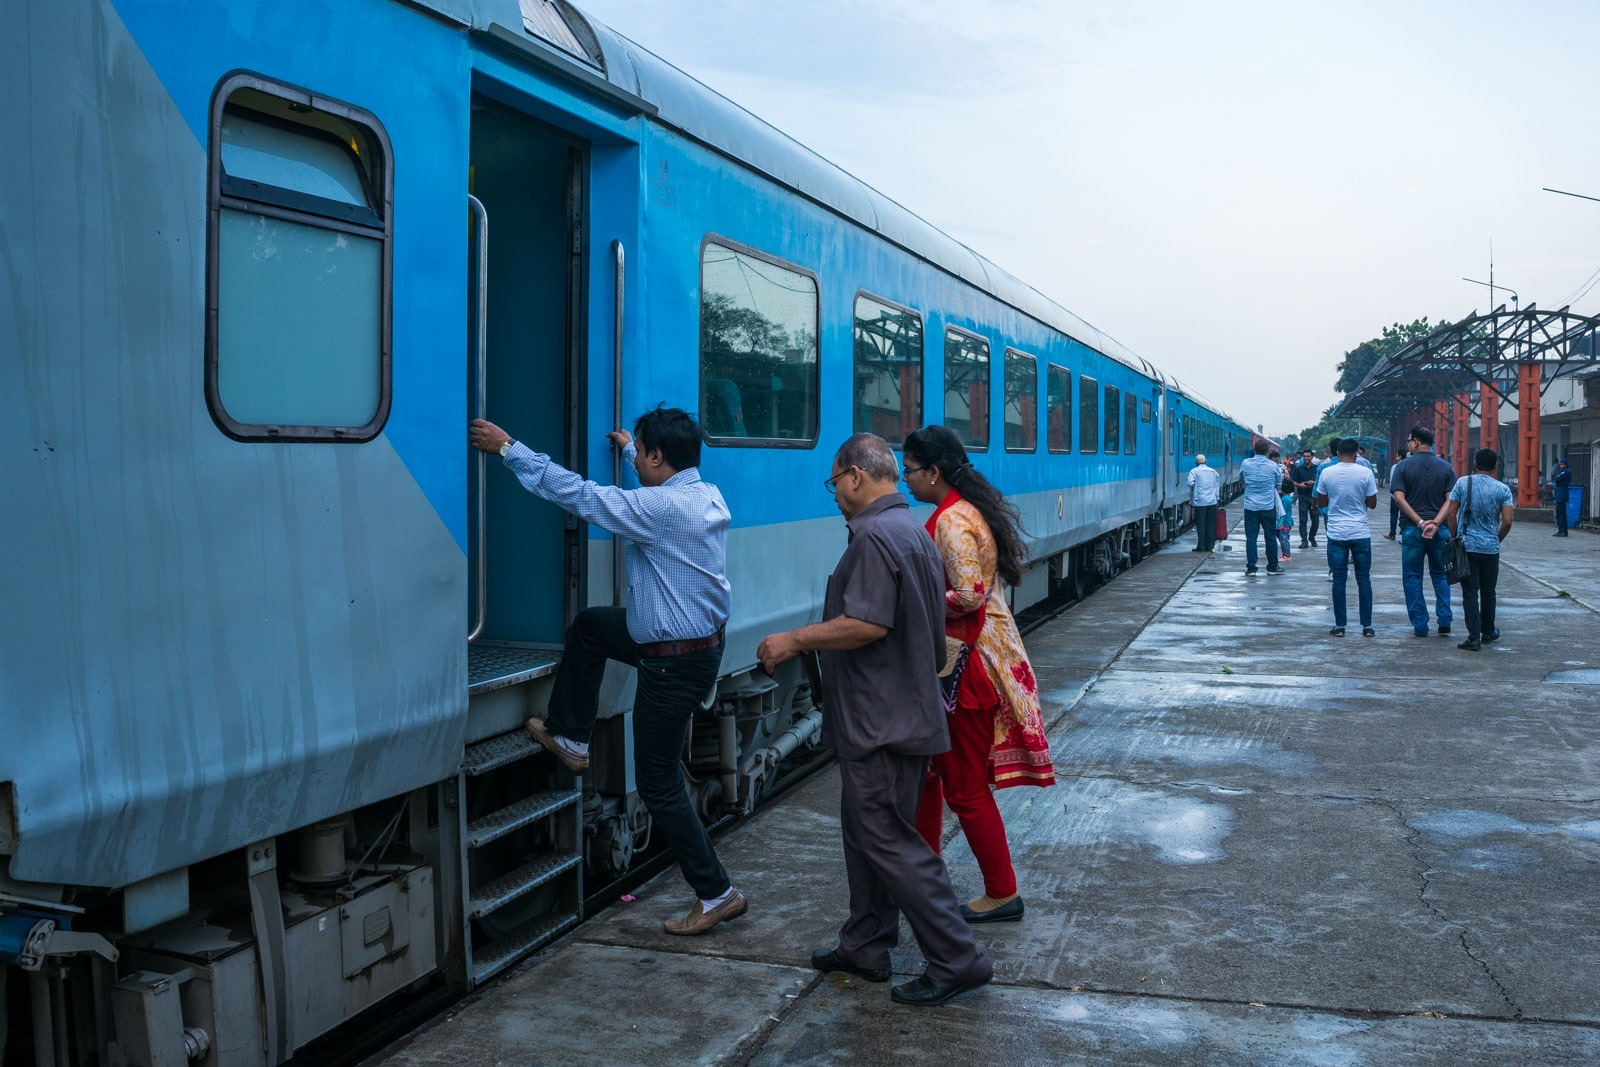 How to take the train from Dhaka to Kolkata - People boarding the Maitree Express train at Cantonment station - Lost With Purpose travel blog